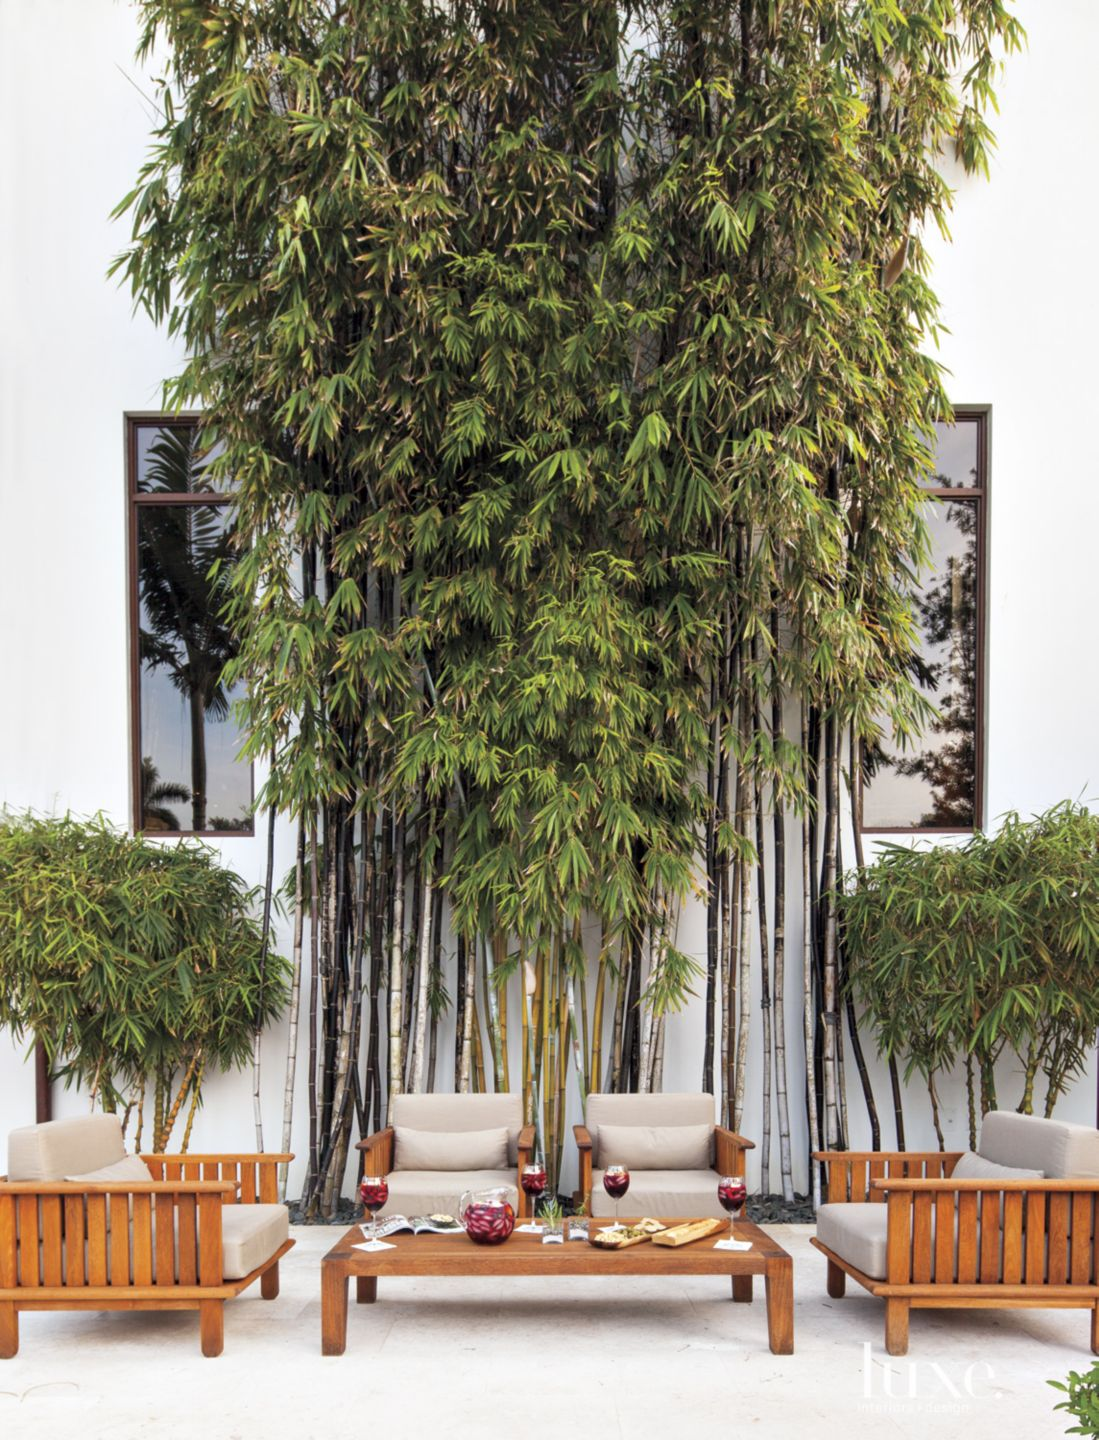 Contemporary Outdoor Seating with Bamboo Shoots